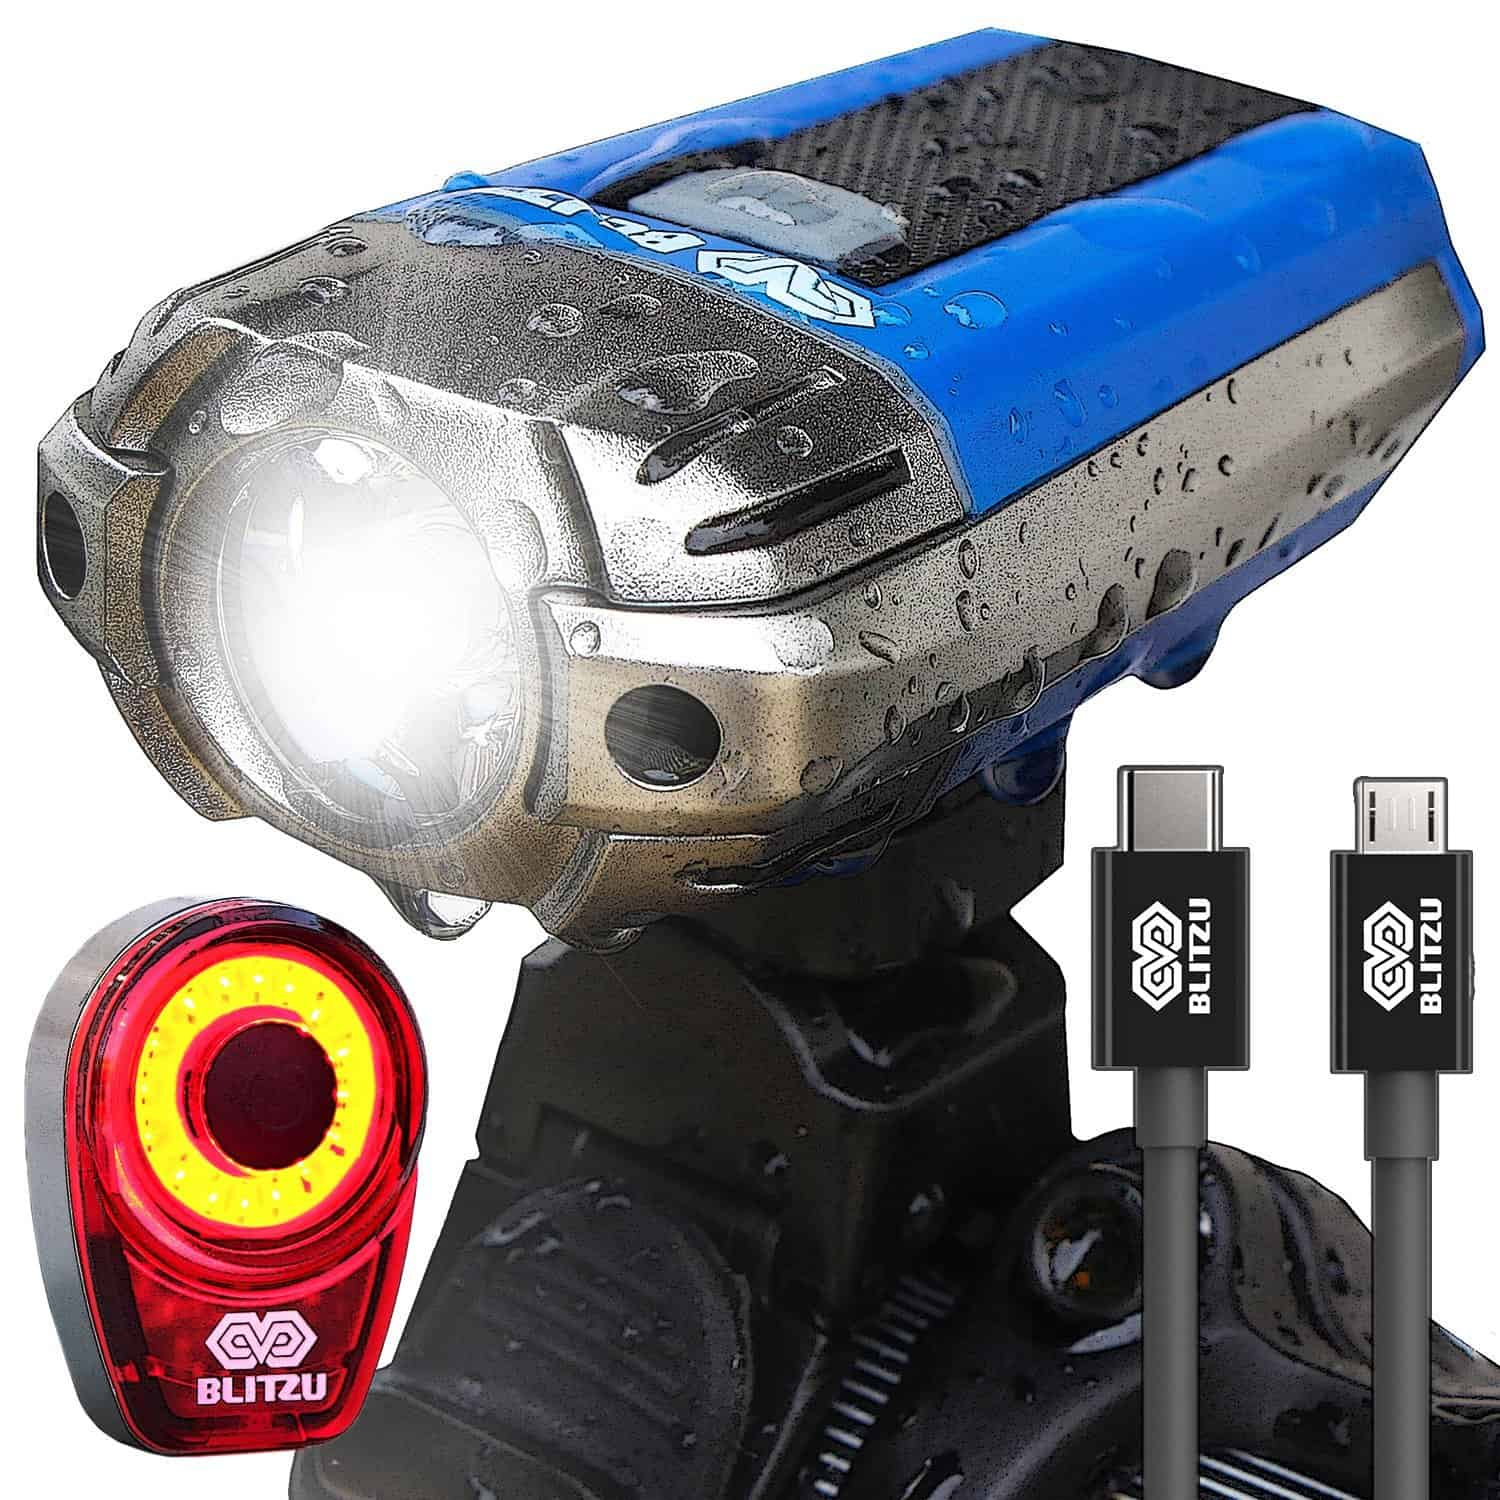 Bike Lane Safety Light Usb Rechargeable The X Fire